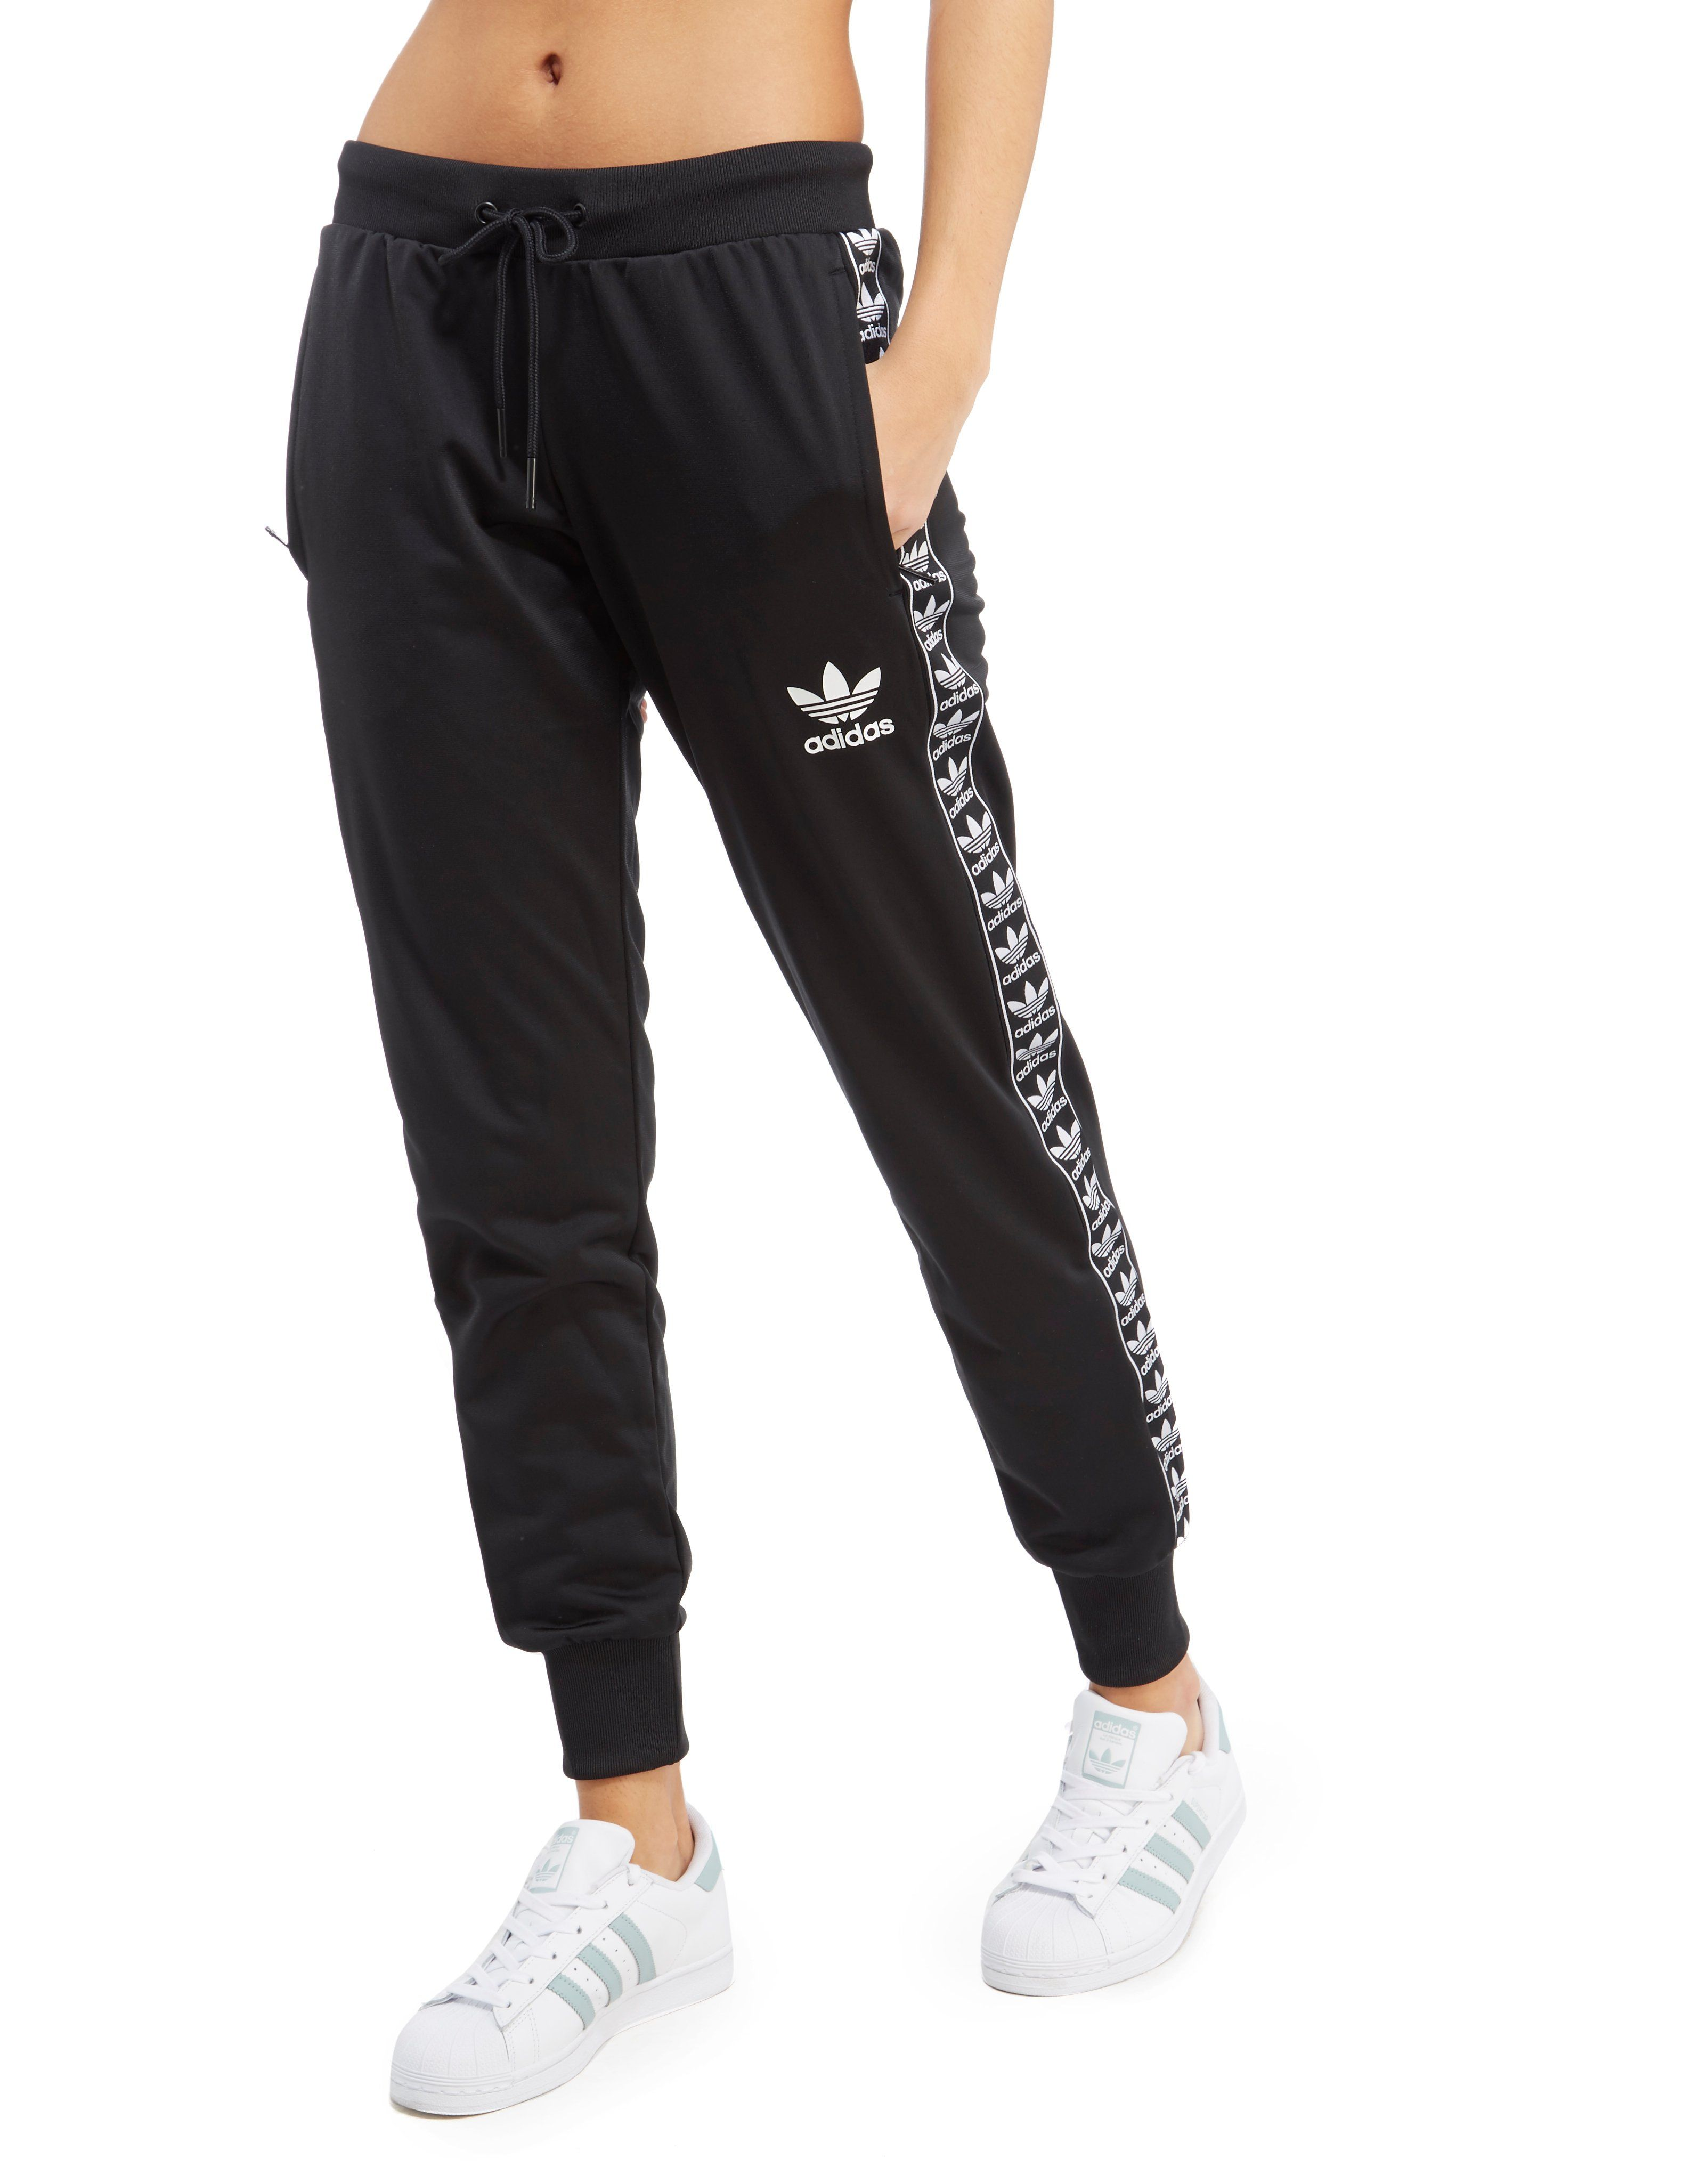 Creative Pin Adidas Running Pants For Women Flattering Pants Colors Sizes Amp